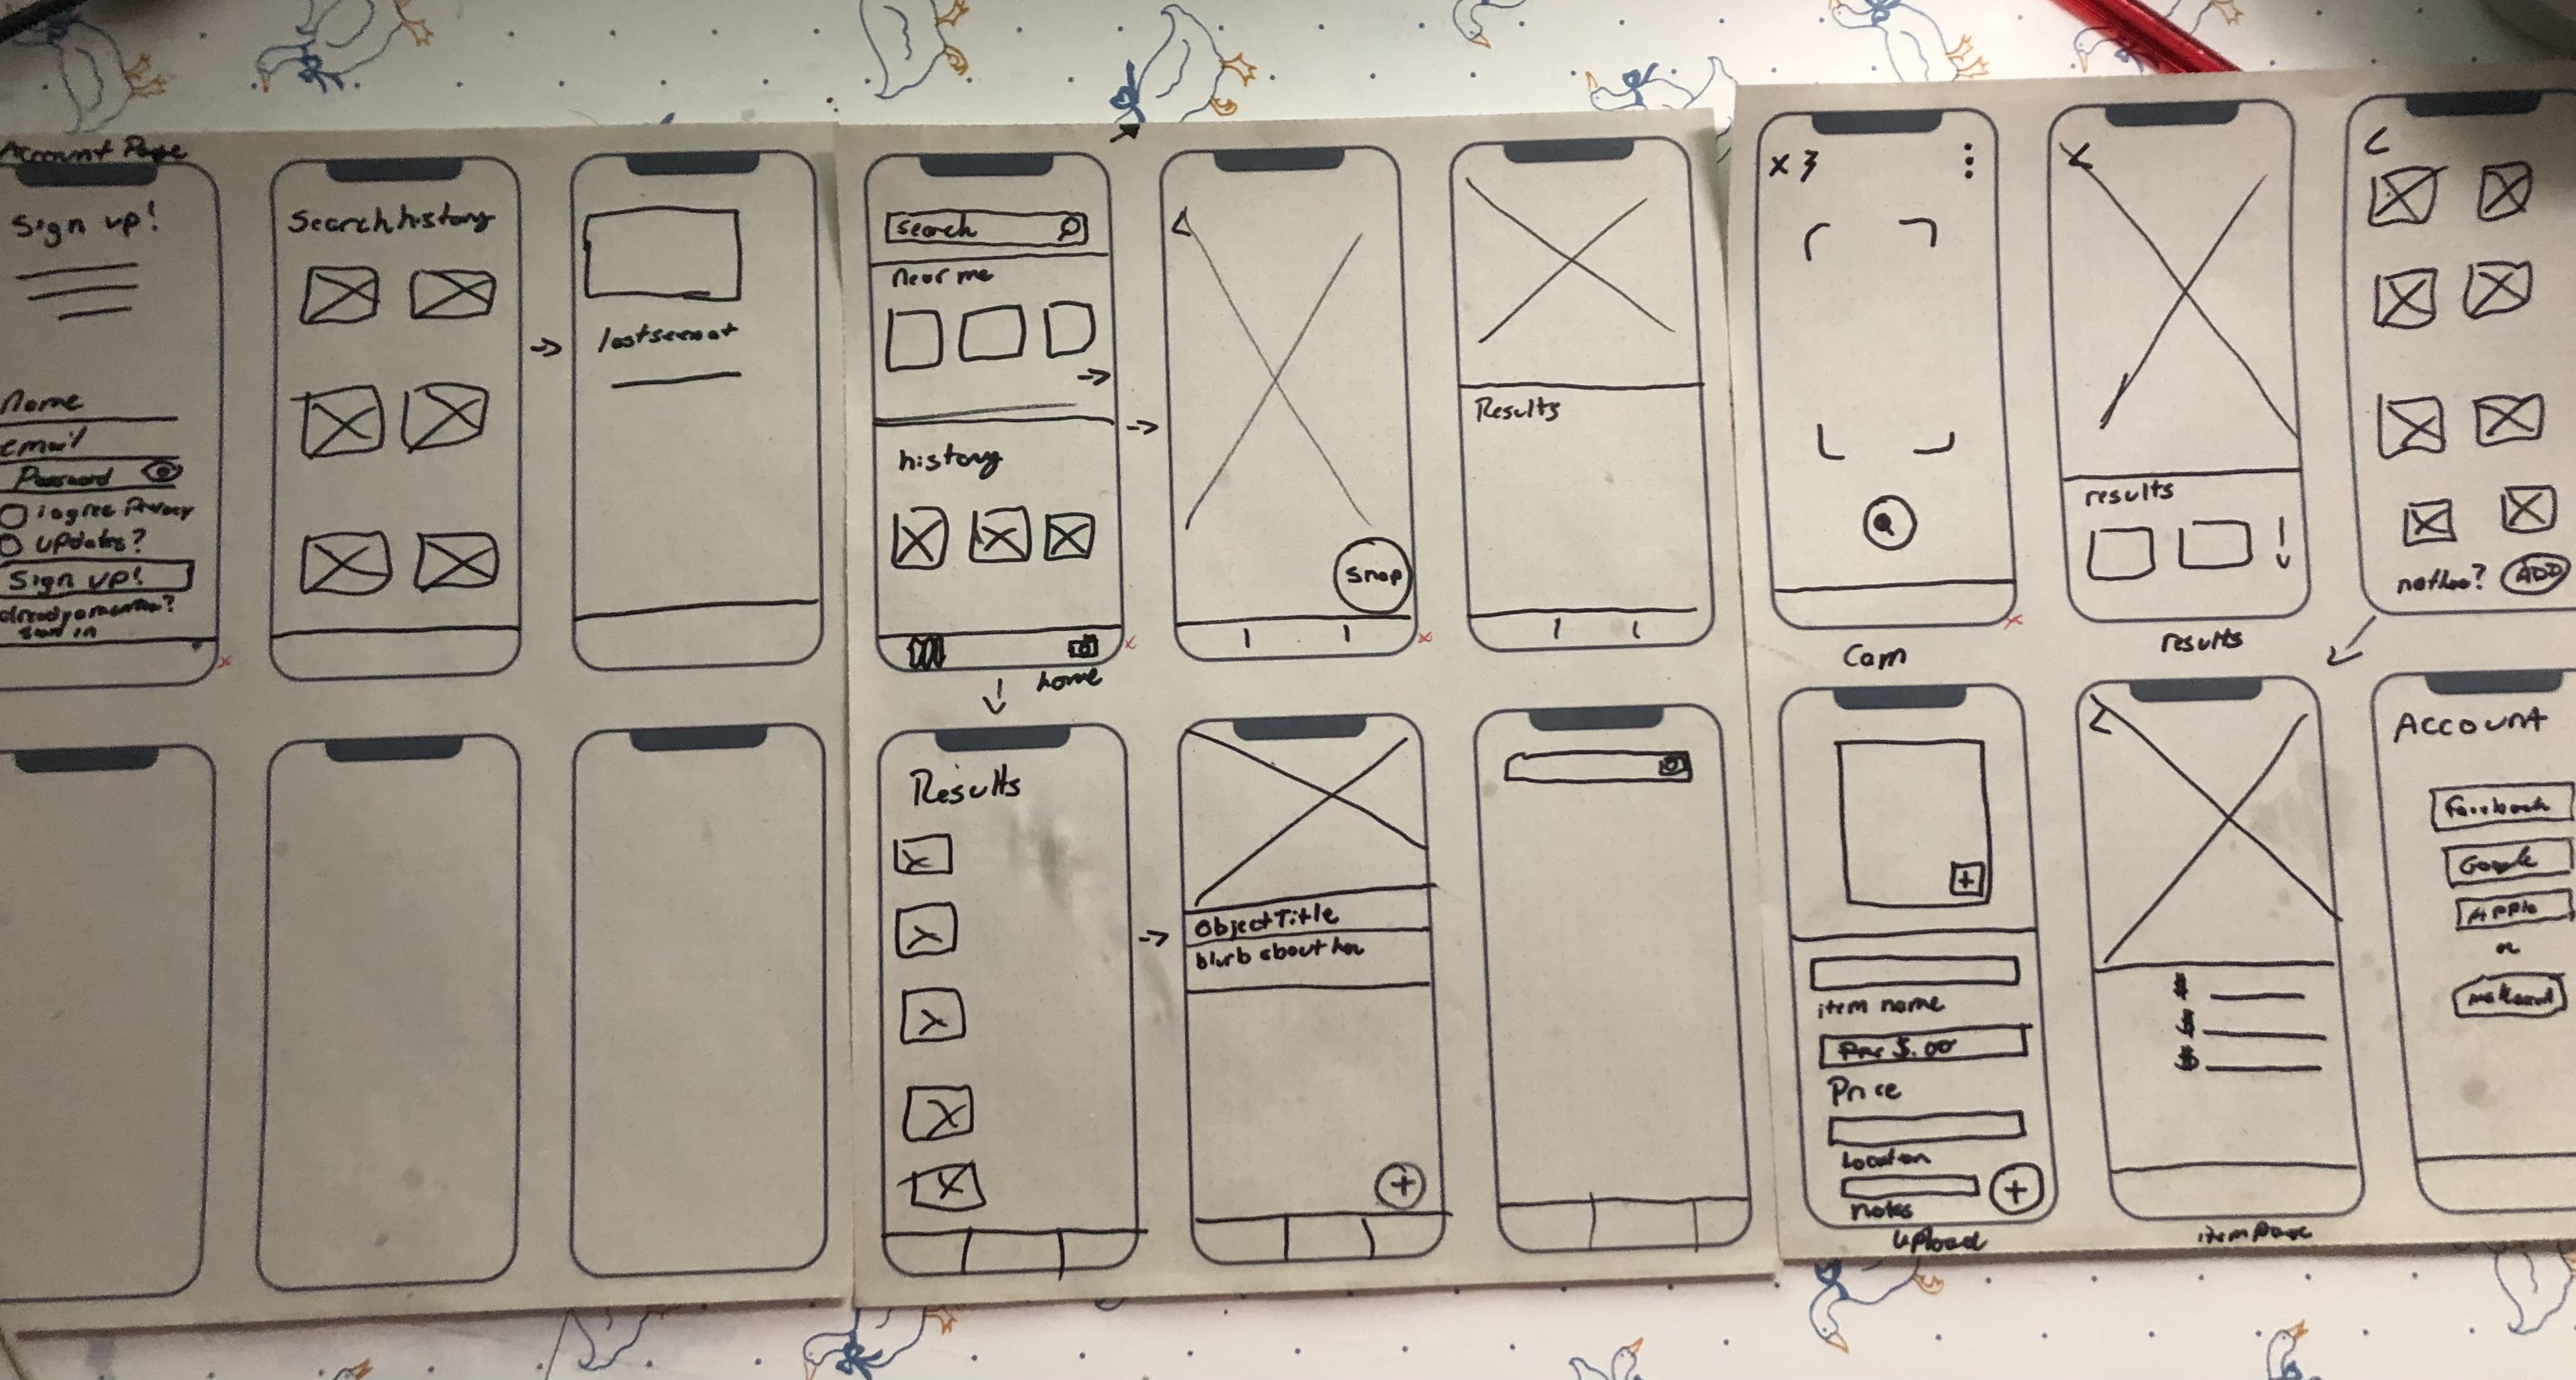 Rough sketches of the layout of a mobile app